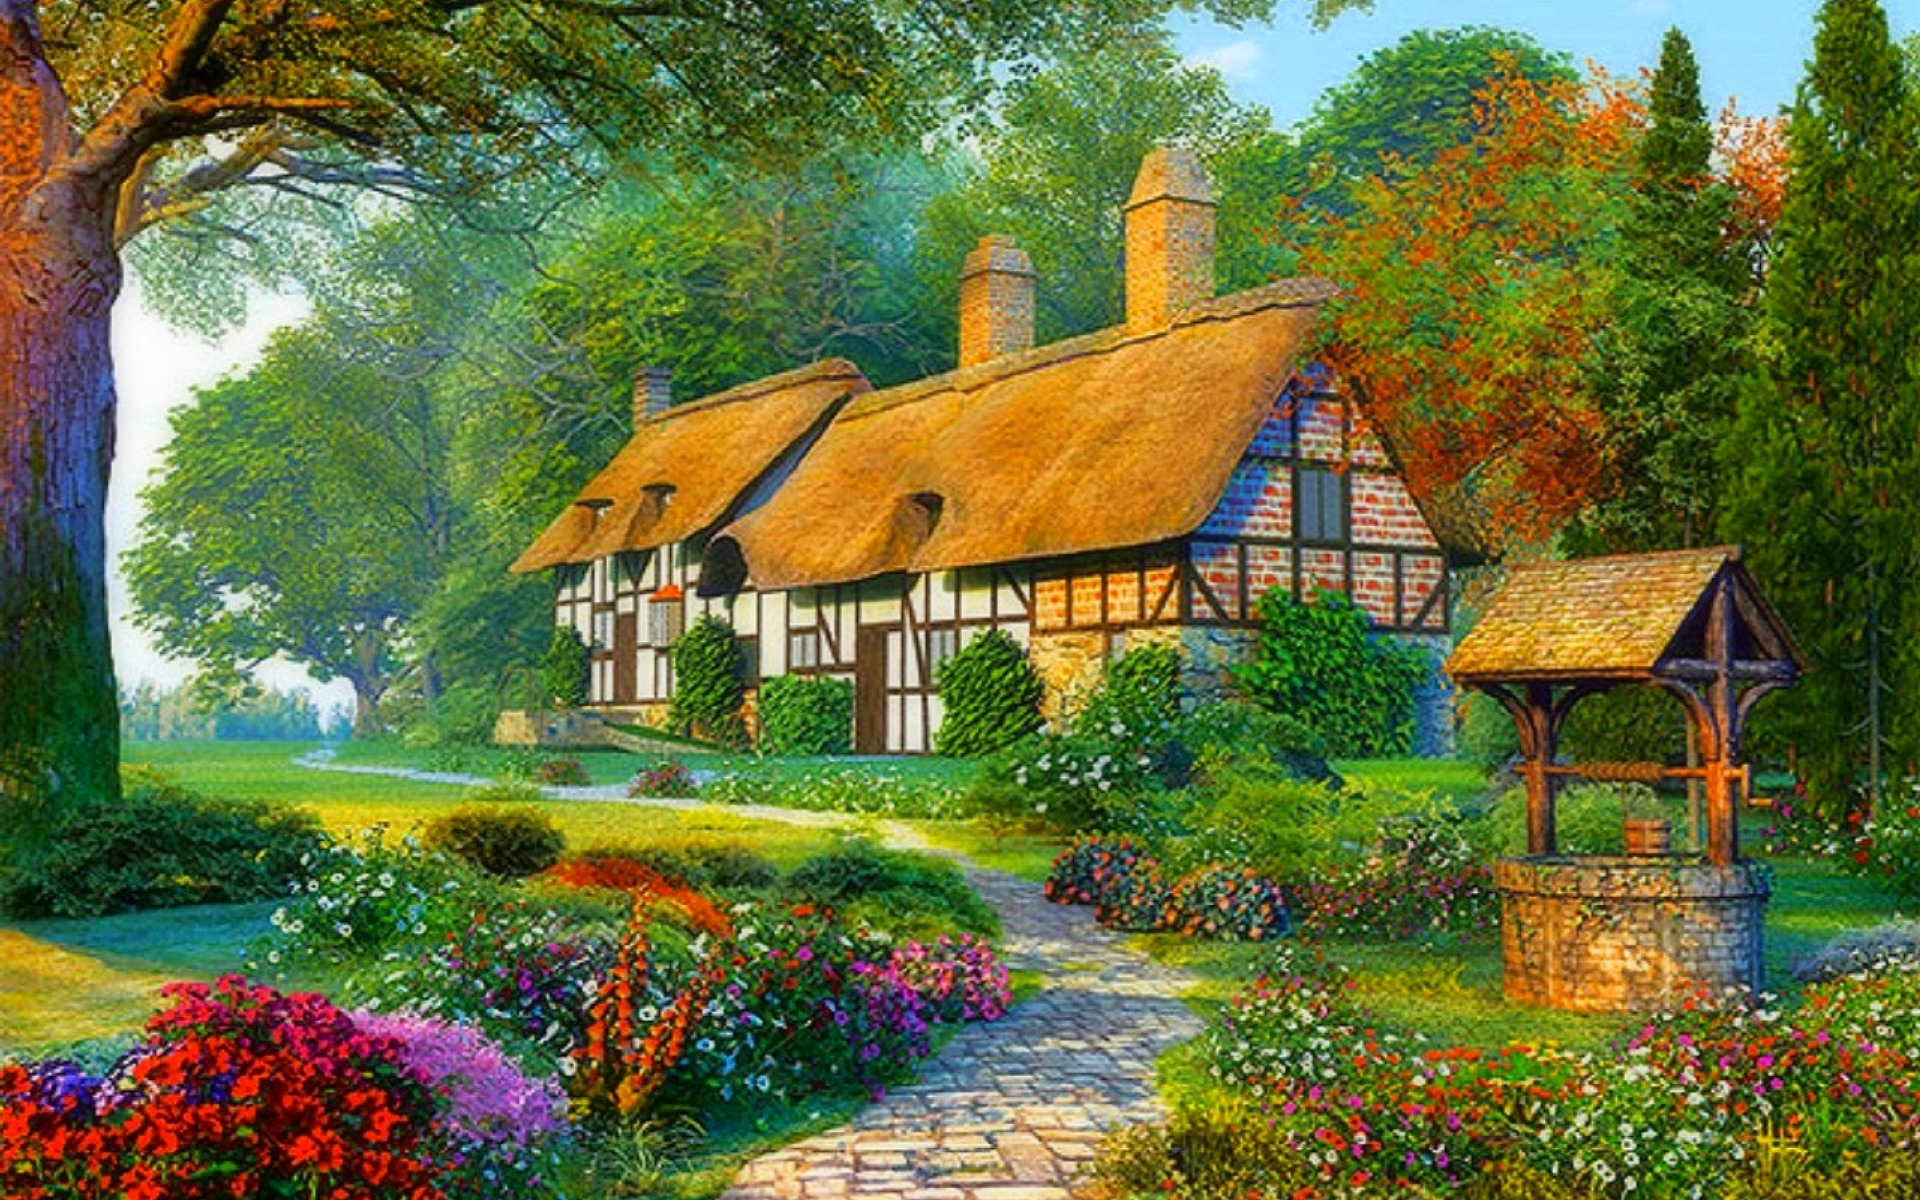 3d Snowy Cottage Animated Wallpaper Free Download Romantic Cottages Wallpapers Romantic Cottages Stock Photos